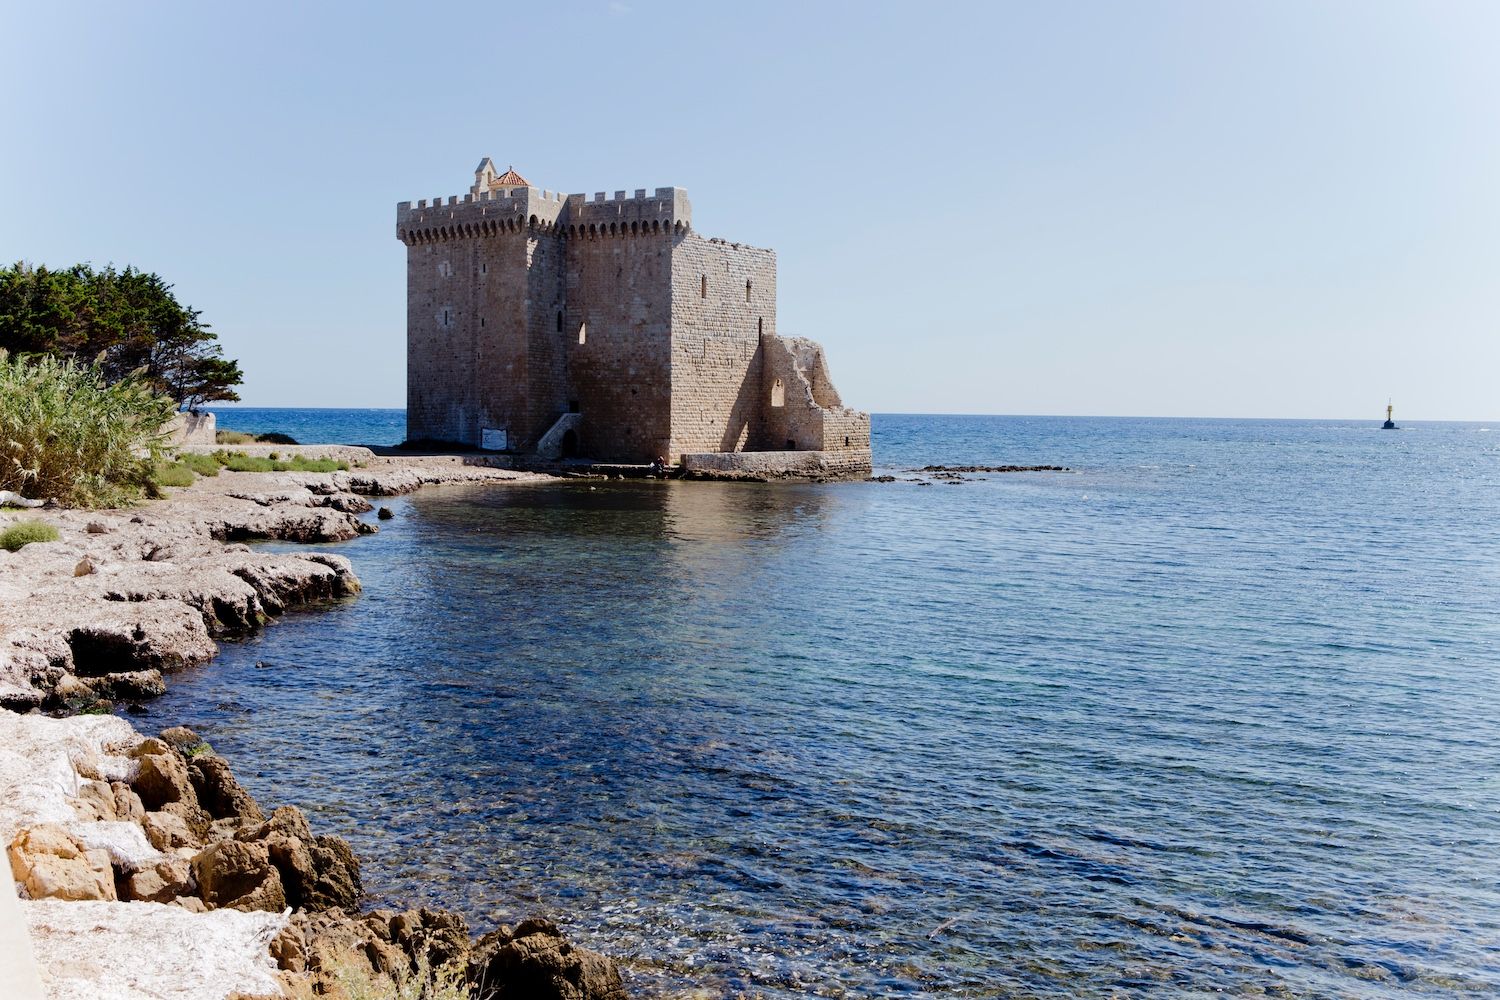 Cote d'azur in september_cannes_ile saint honorat